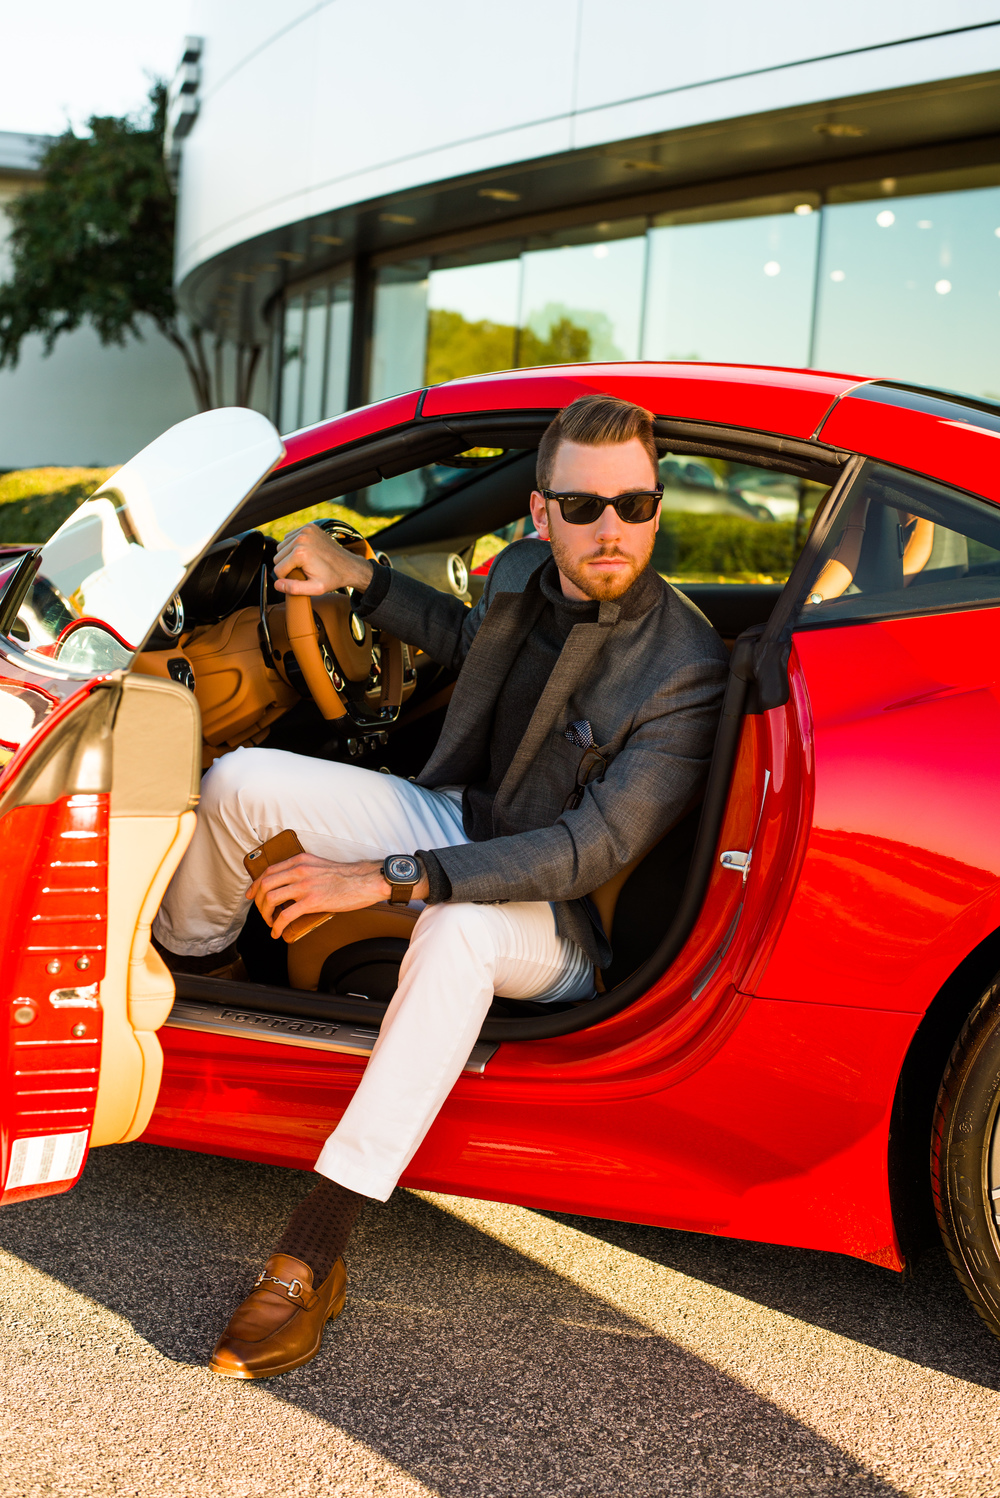 Blazer: SuitSupply, Pants: Banana Republic, Shoes: Johnston & Murphy, Watch: Seven Friday, Glasses: Ray-Ban, Sweater: Ralph Lauren, Car: Ferrari California T, Photo: Alec Hutchins Photography